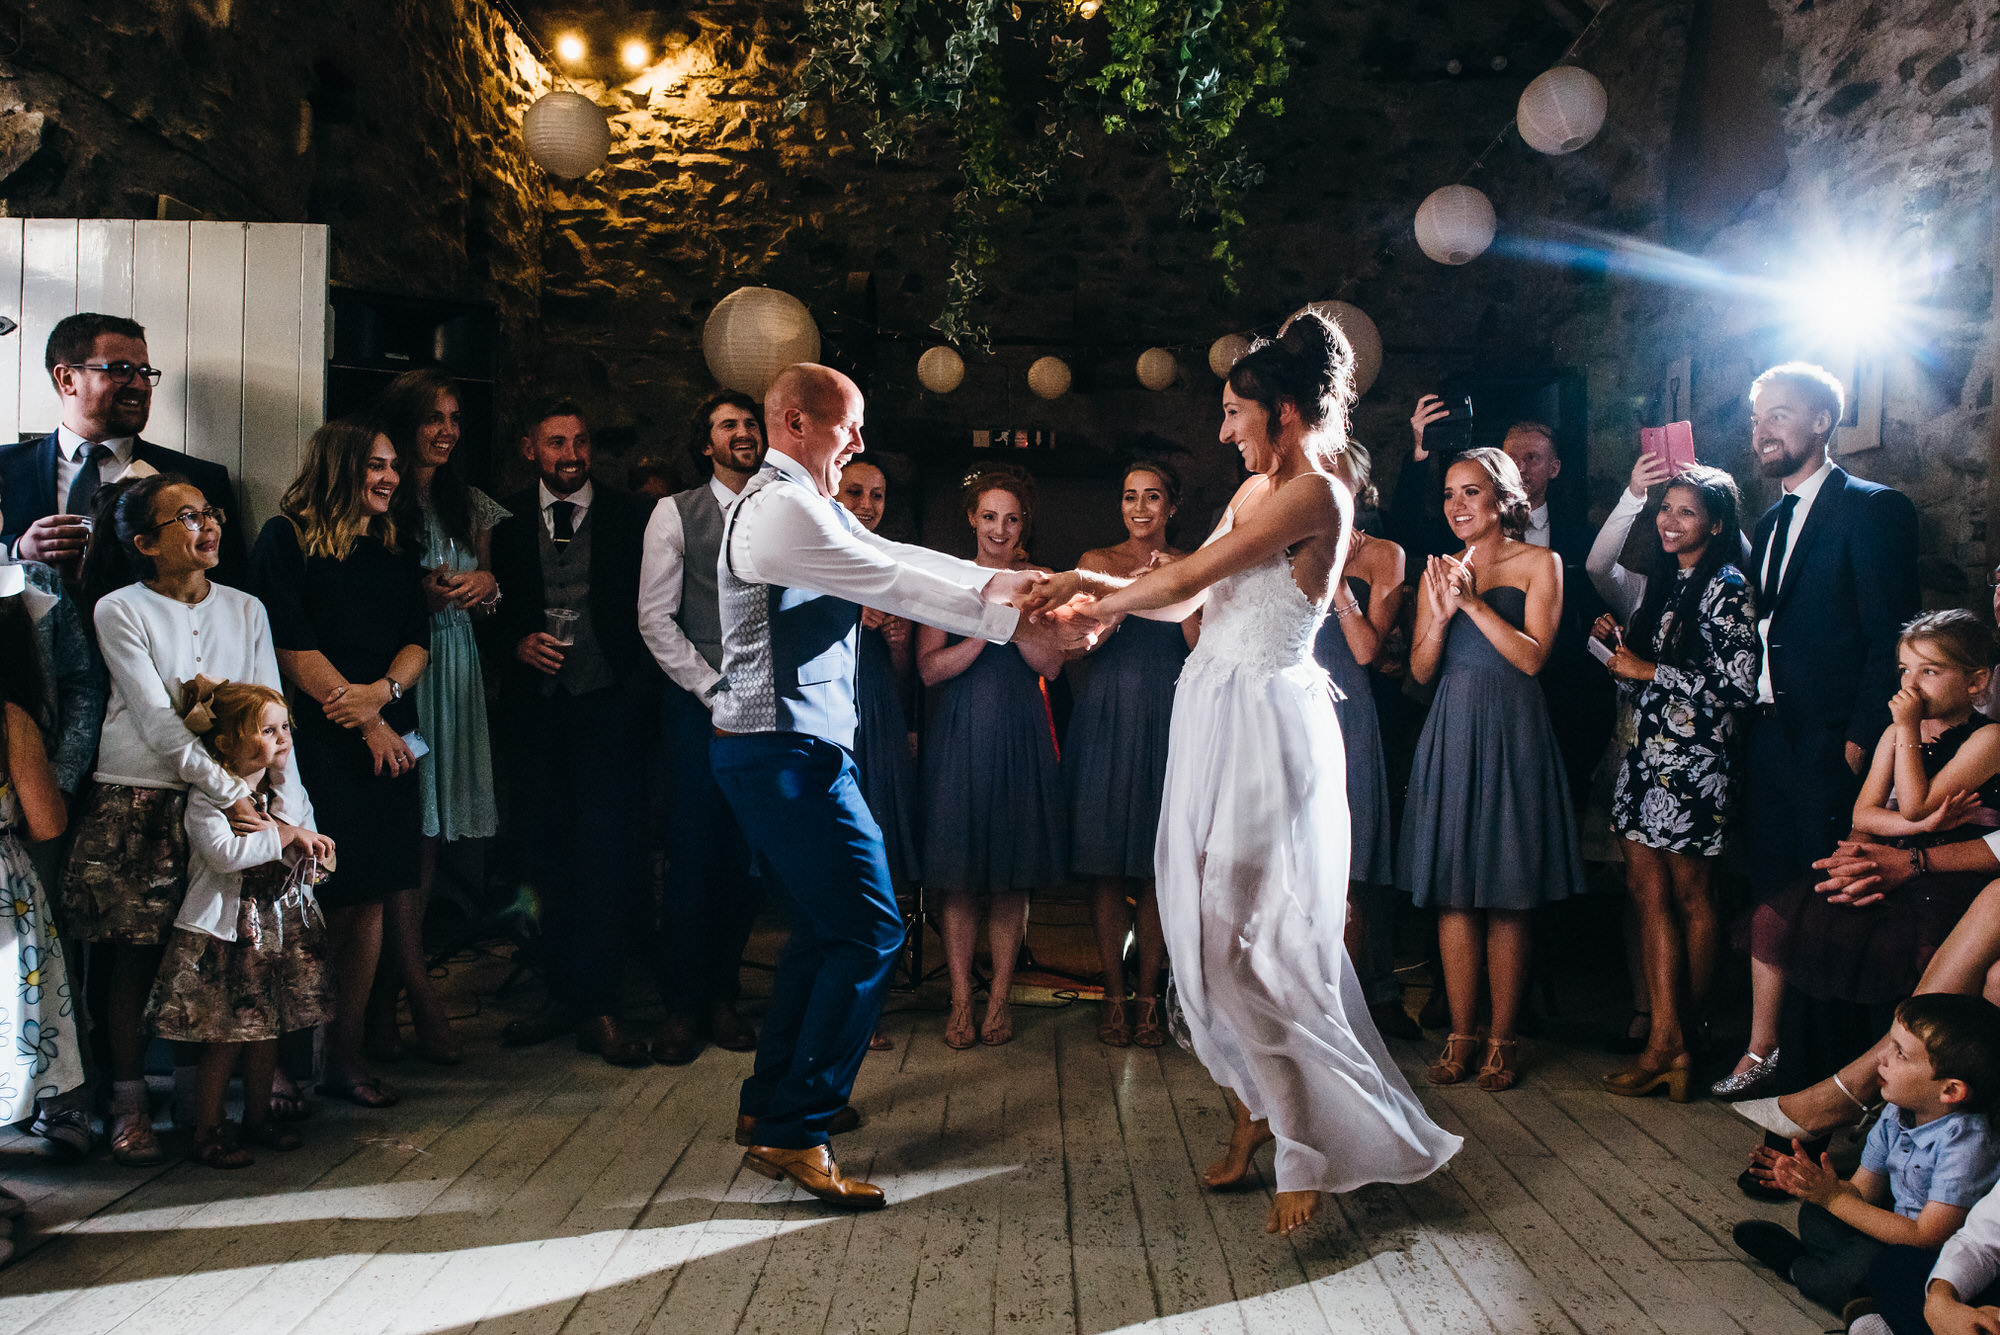 Hafod farm wedding photography072